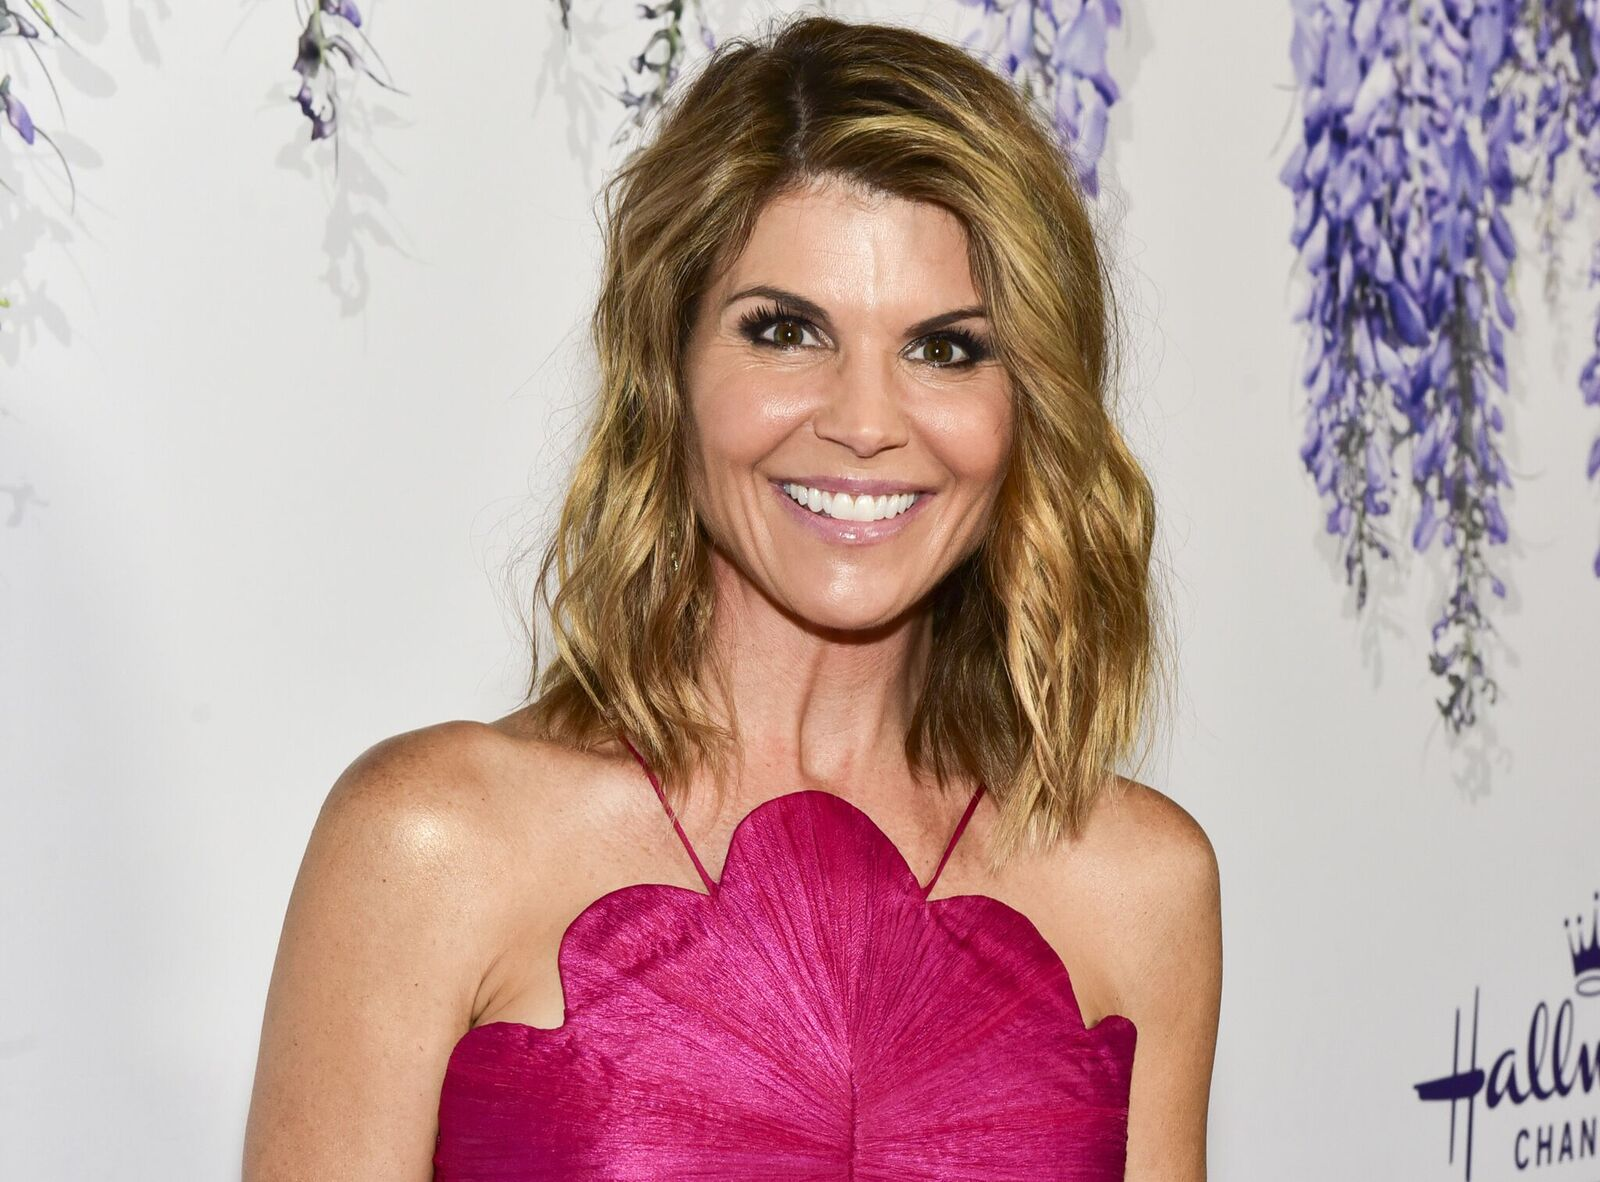 Lori Loughlin attends the 2018 Hallmark Channel Summer TCA at a private residence on July 26, 2018 in Beverly Hills, California | Photo: Getty Images